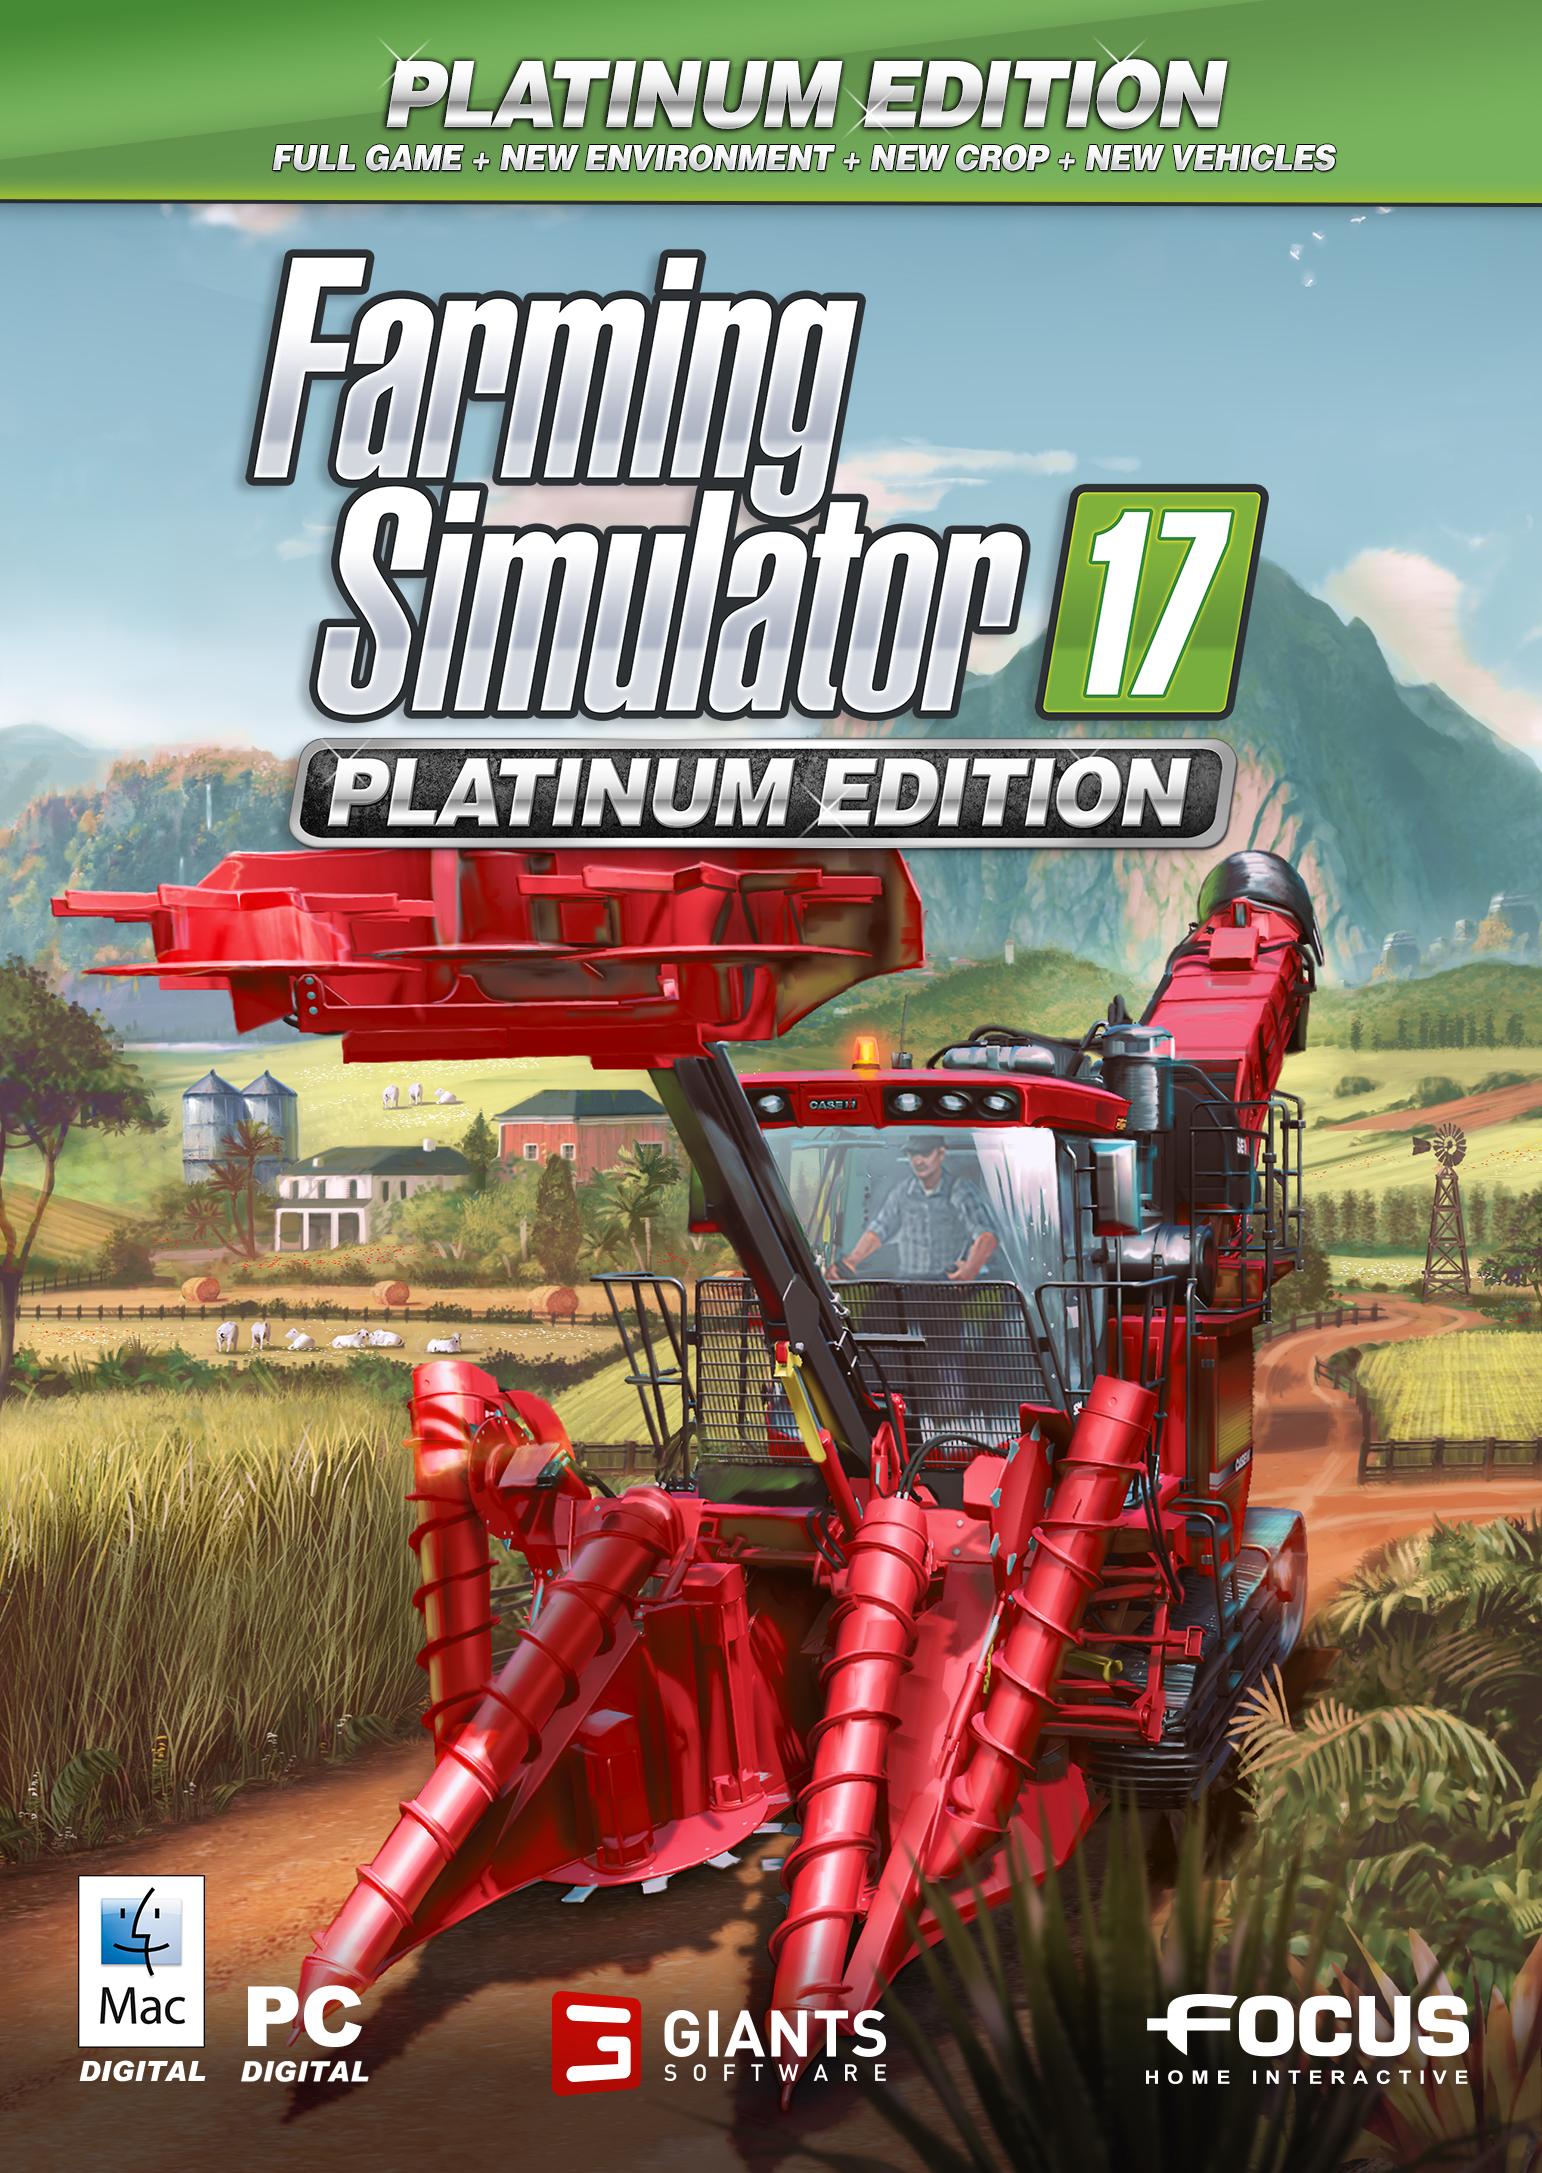 Farming Simulator 17 - Platinum Edition PC/MAC [Online Game Code] by Focus Home Interactive